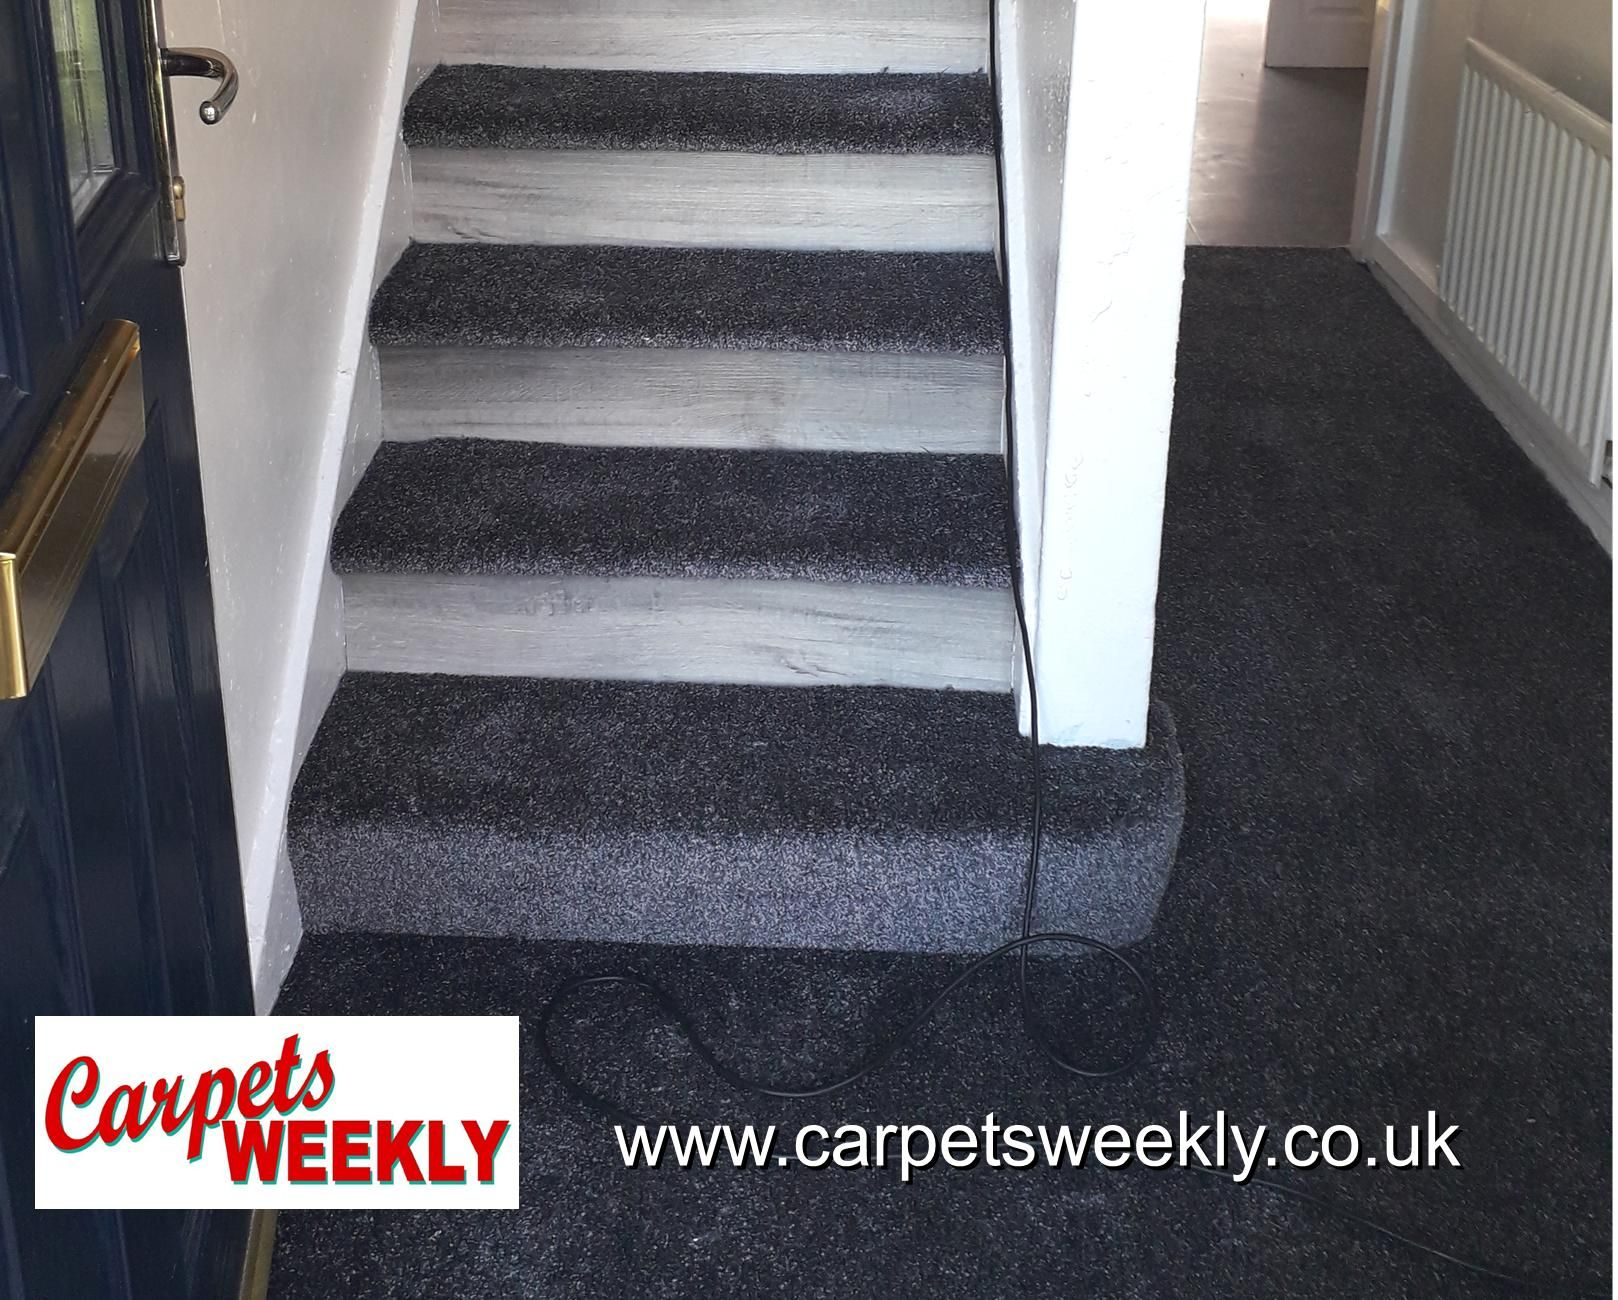 Carpets Weekly, Combi Stairs - Apollo Dark Grey Carpet and NEW Grey Oak LVT on the risers 4